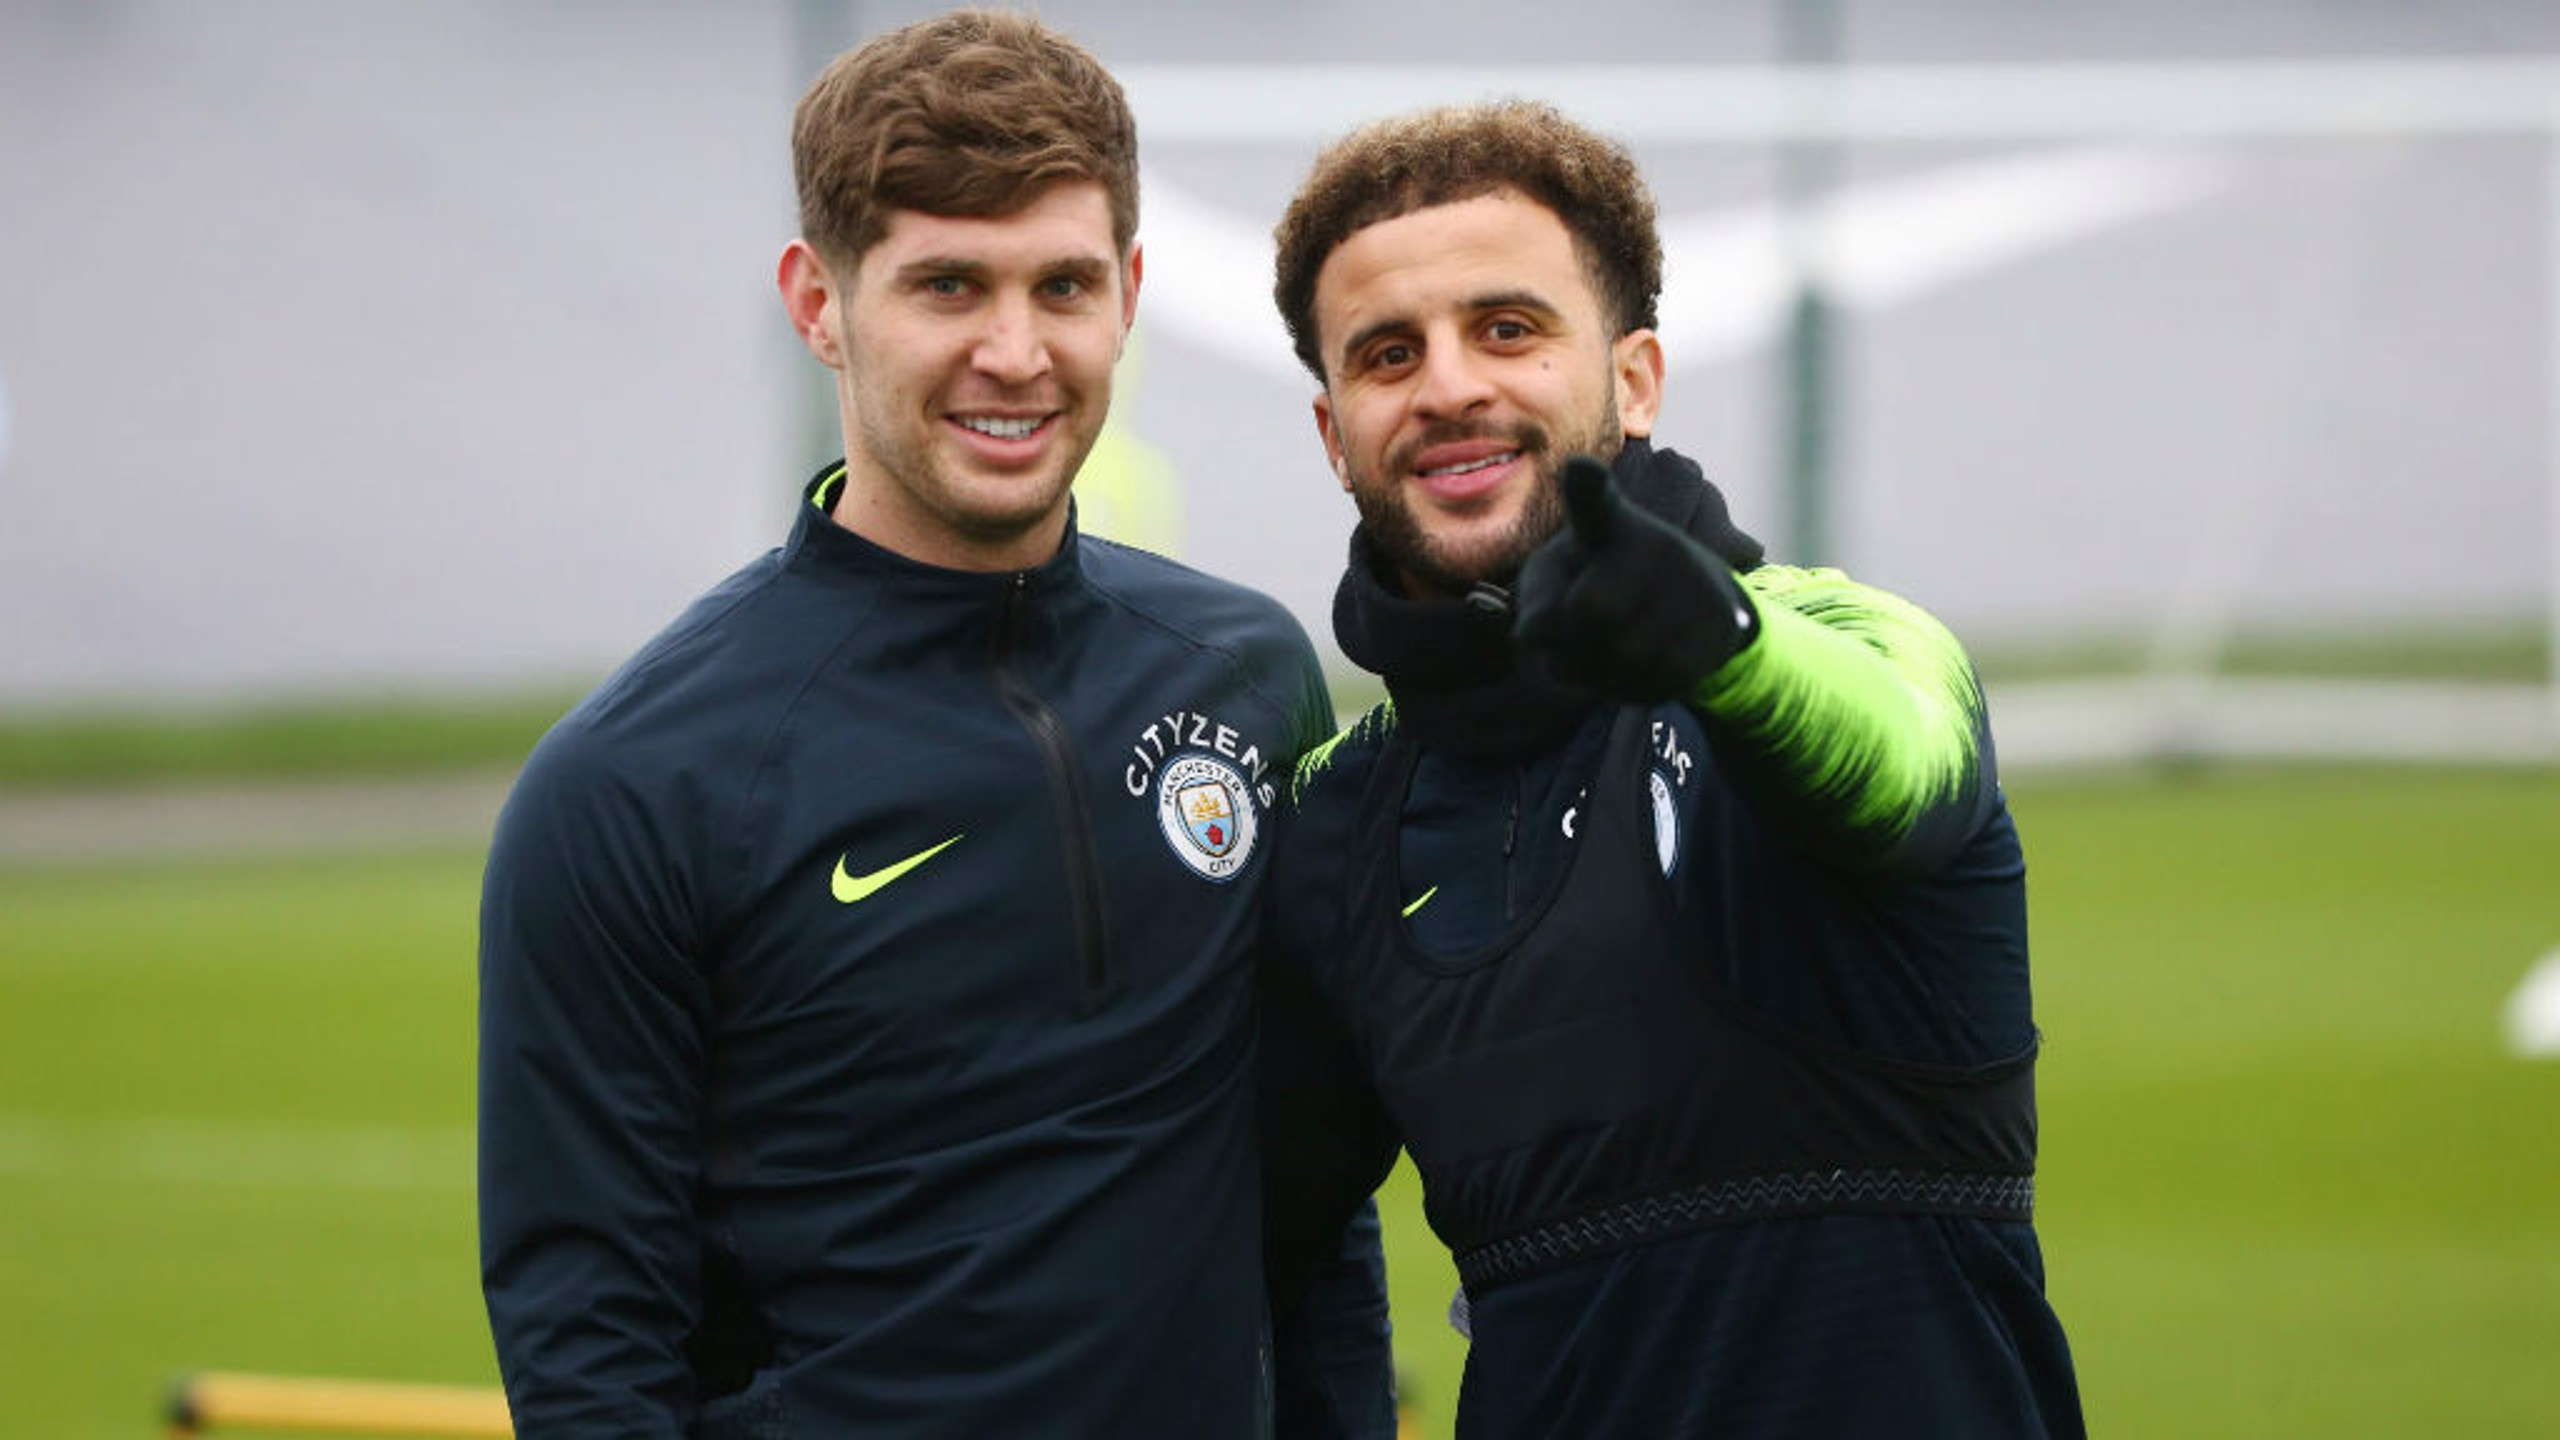 RUMBLED: Kyle Walker and John Stones notice the camera